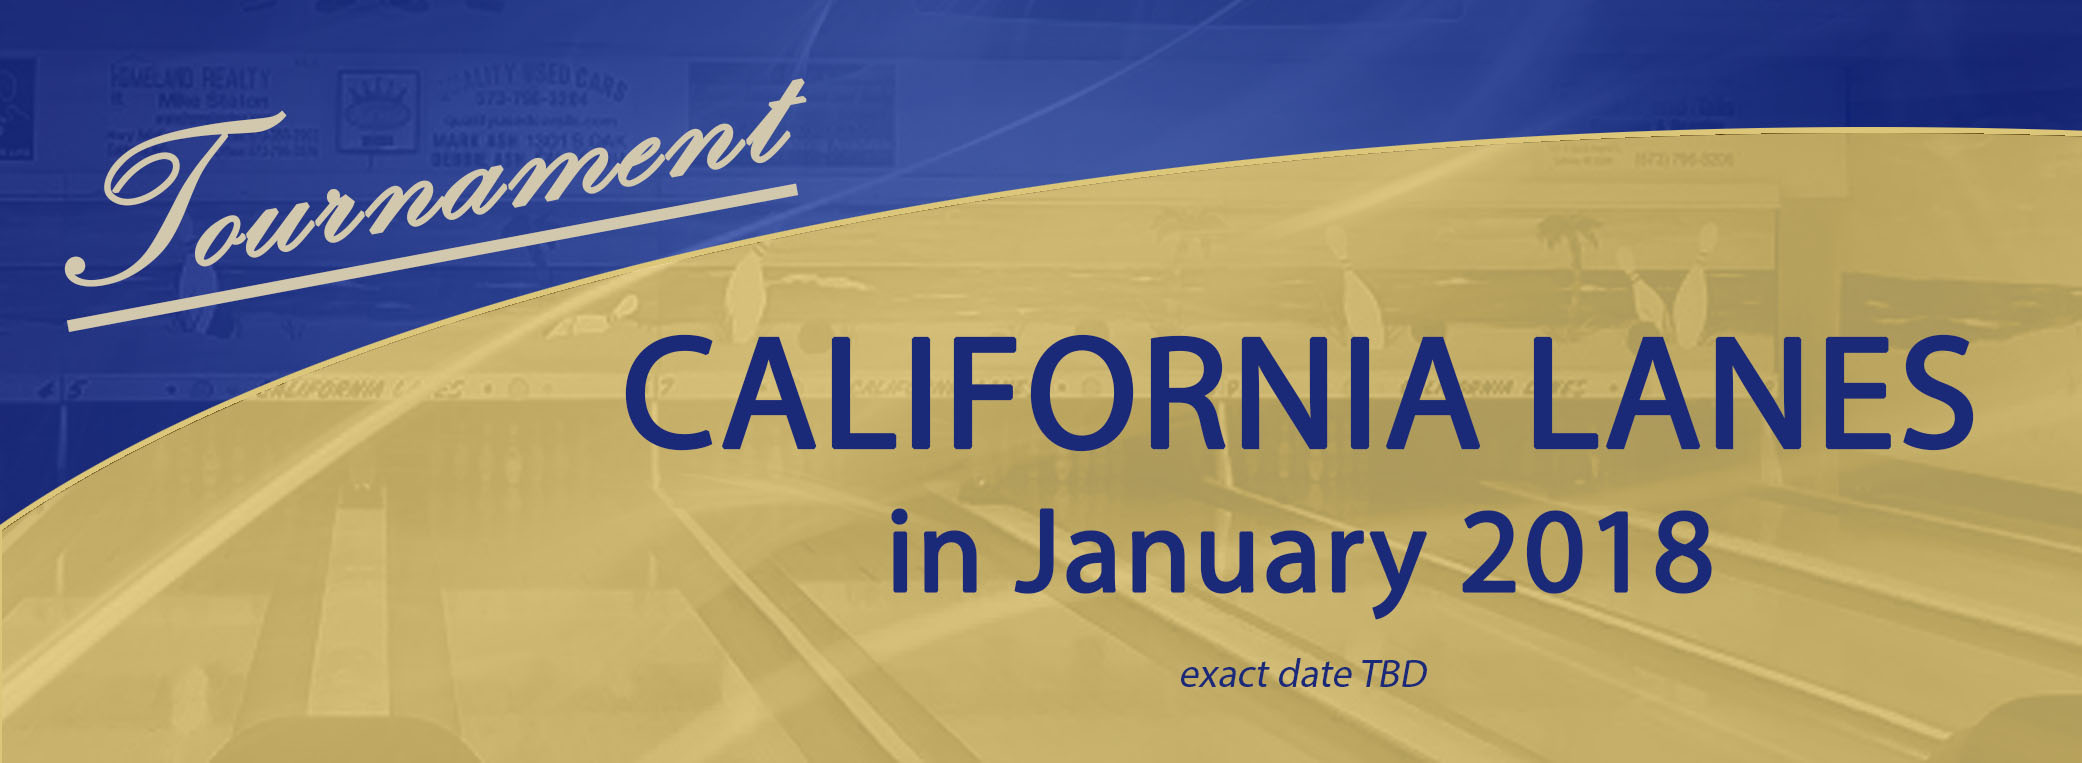 Tournament – California Lanes